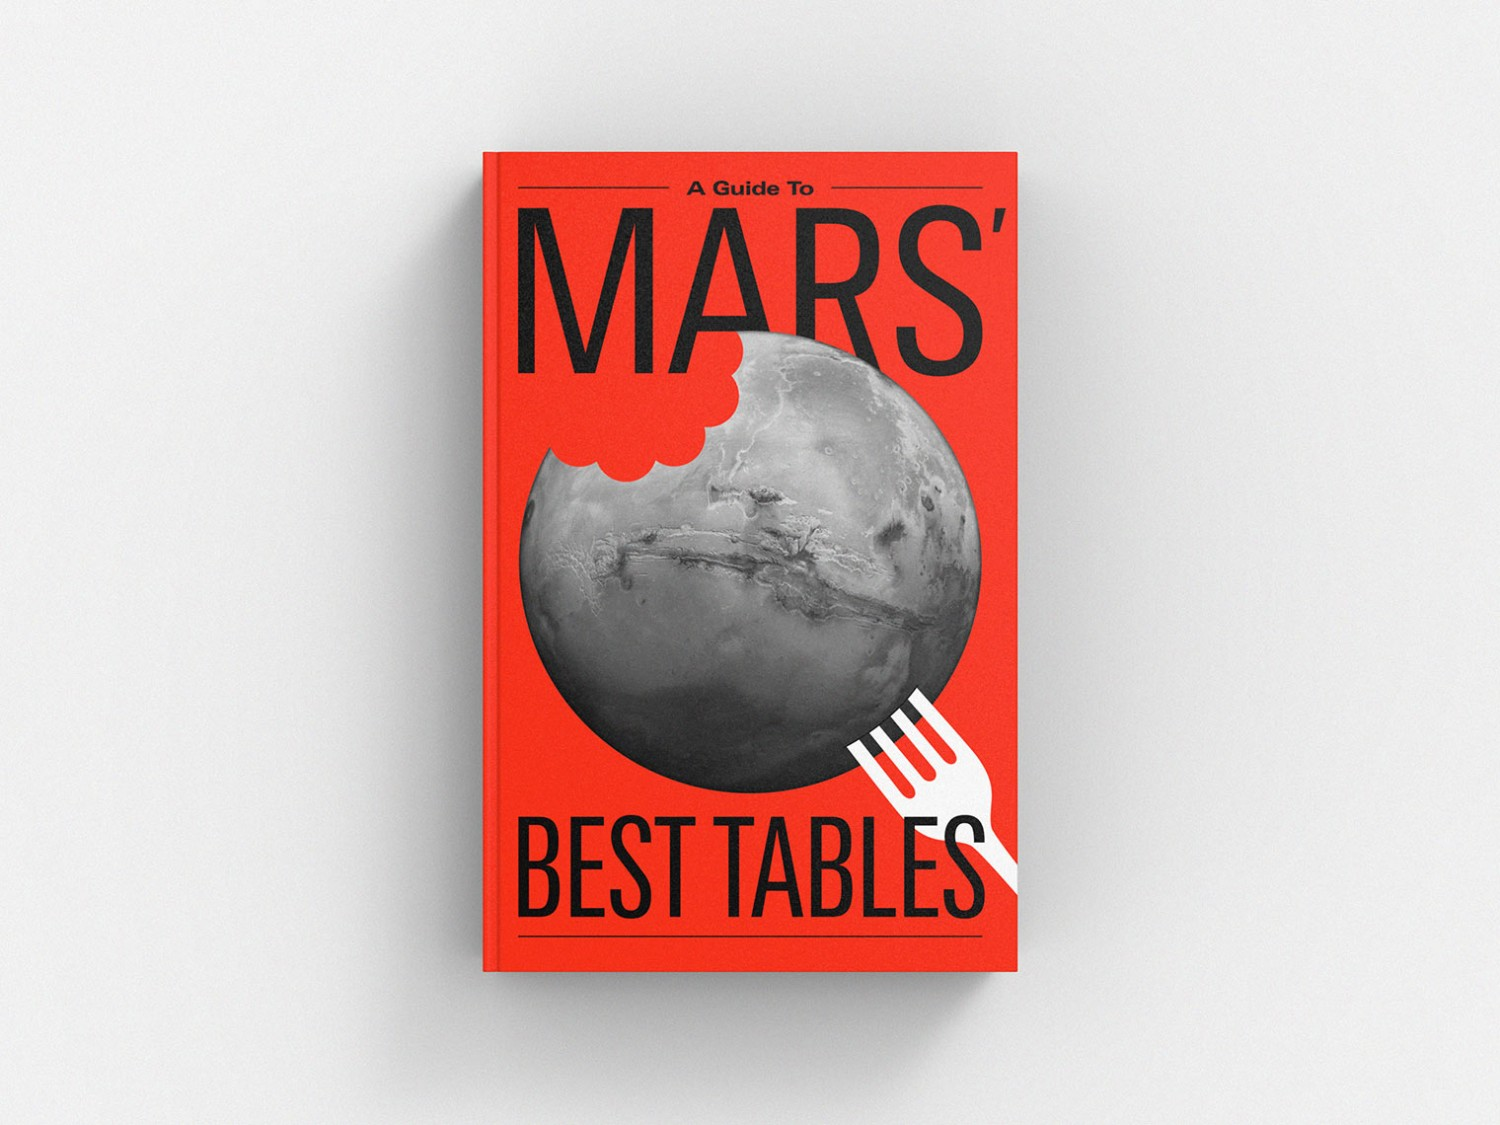 A Guide to Mars' Best Tables